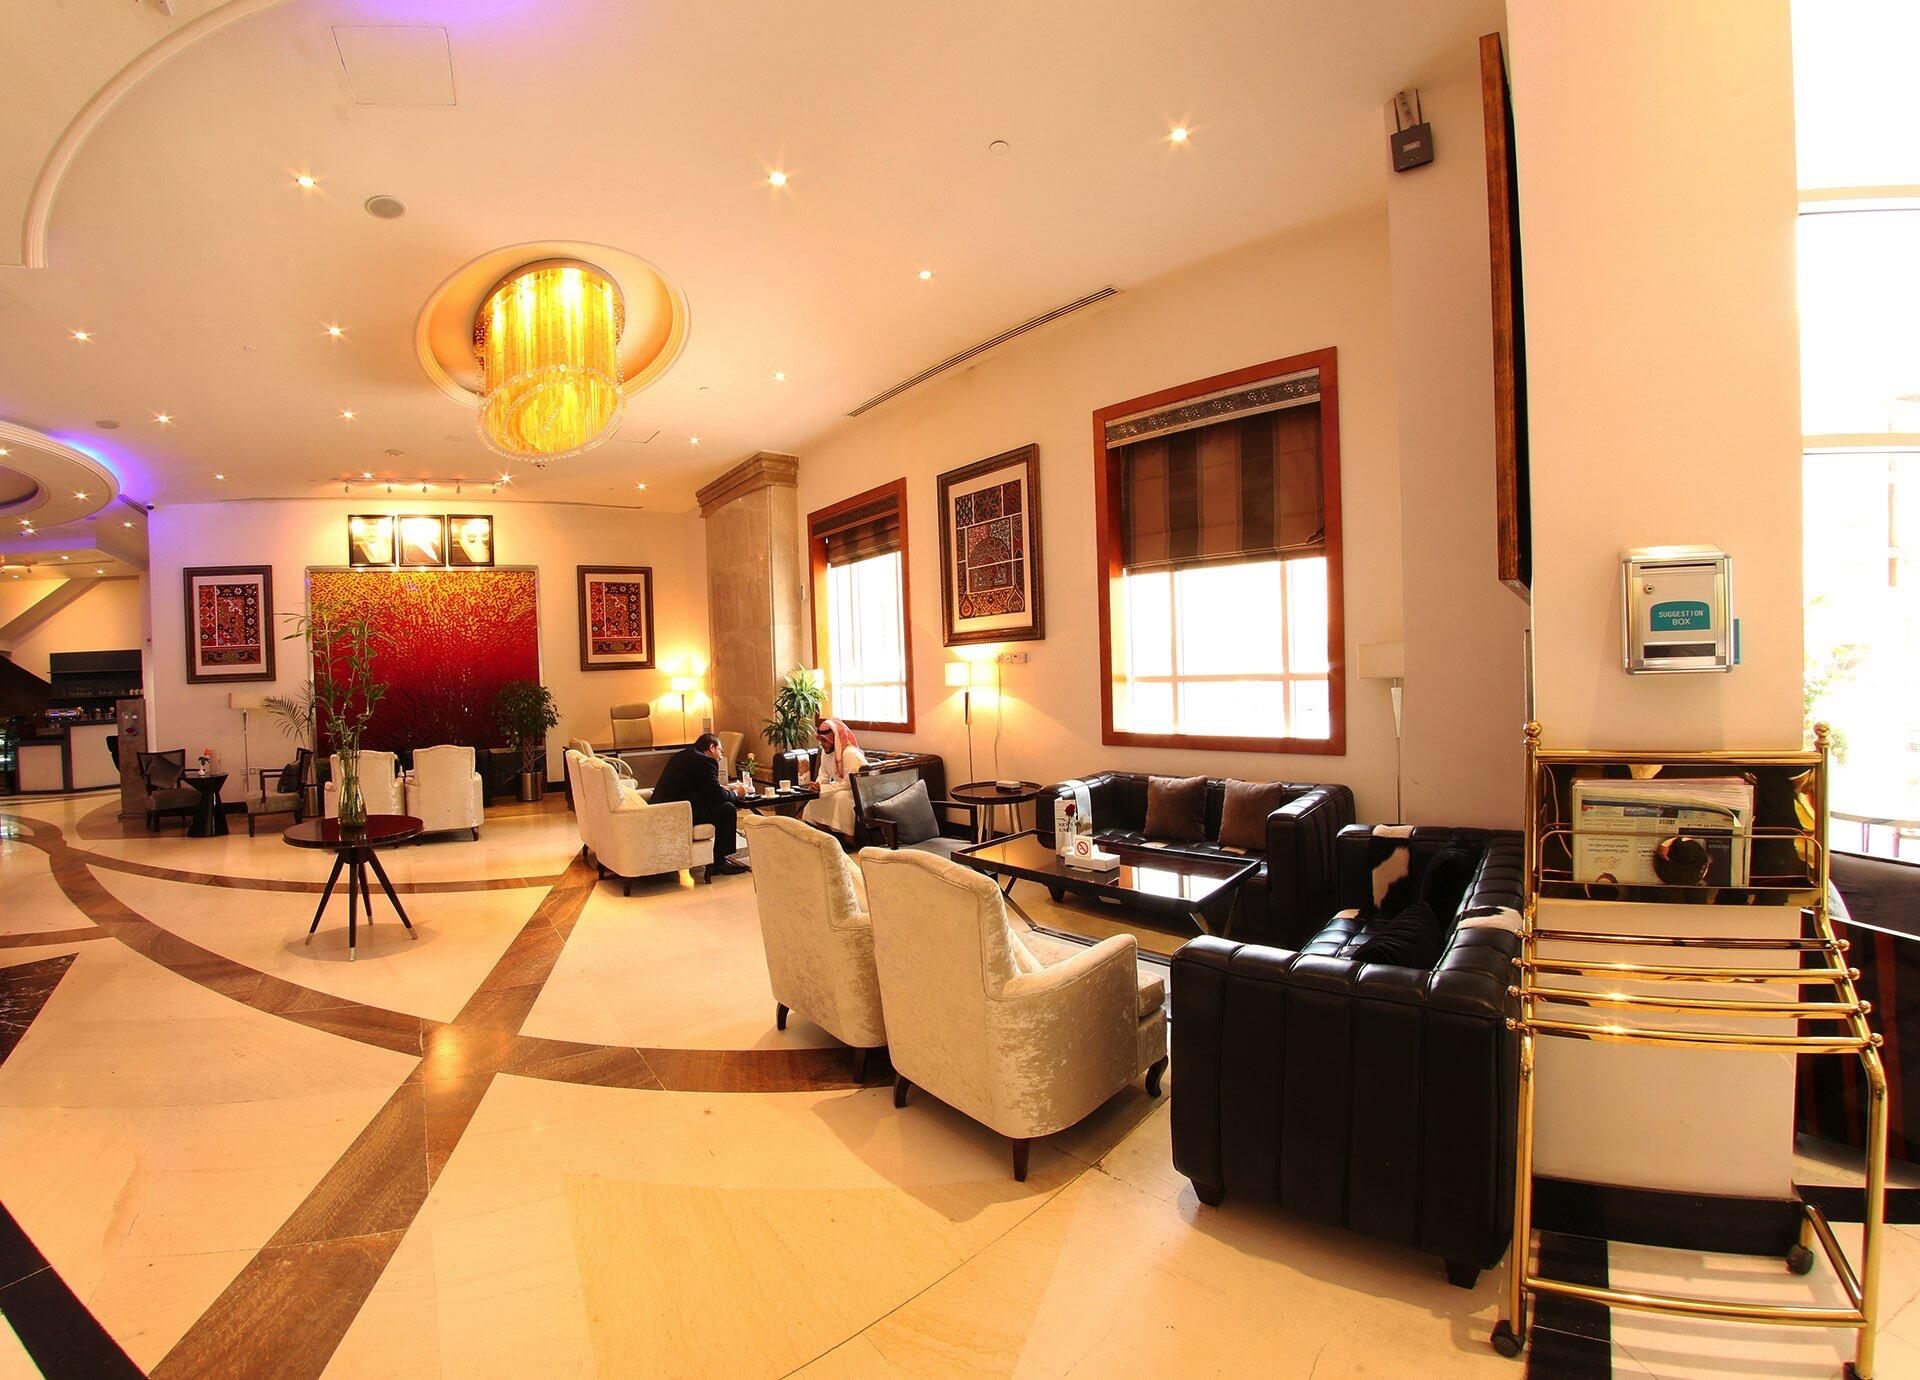 News Cafe at Dabab Hotel by Warwick